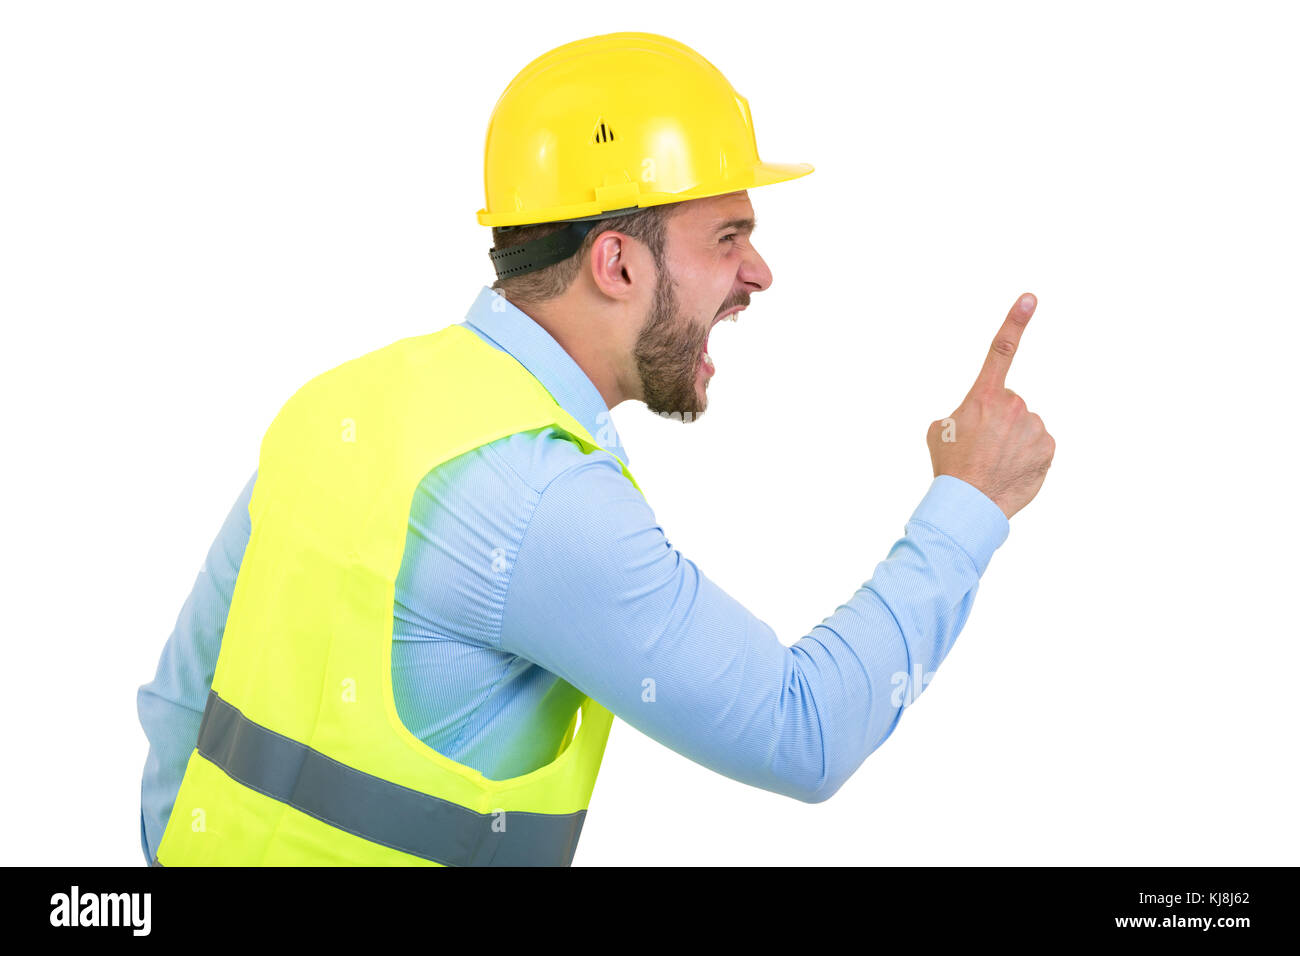 Angry builder or constructor yelling at somebody as fury concept isolated on white background with copyspace - Stock Image